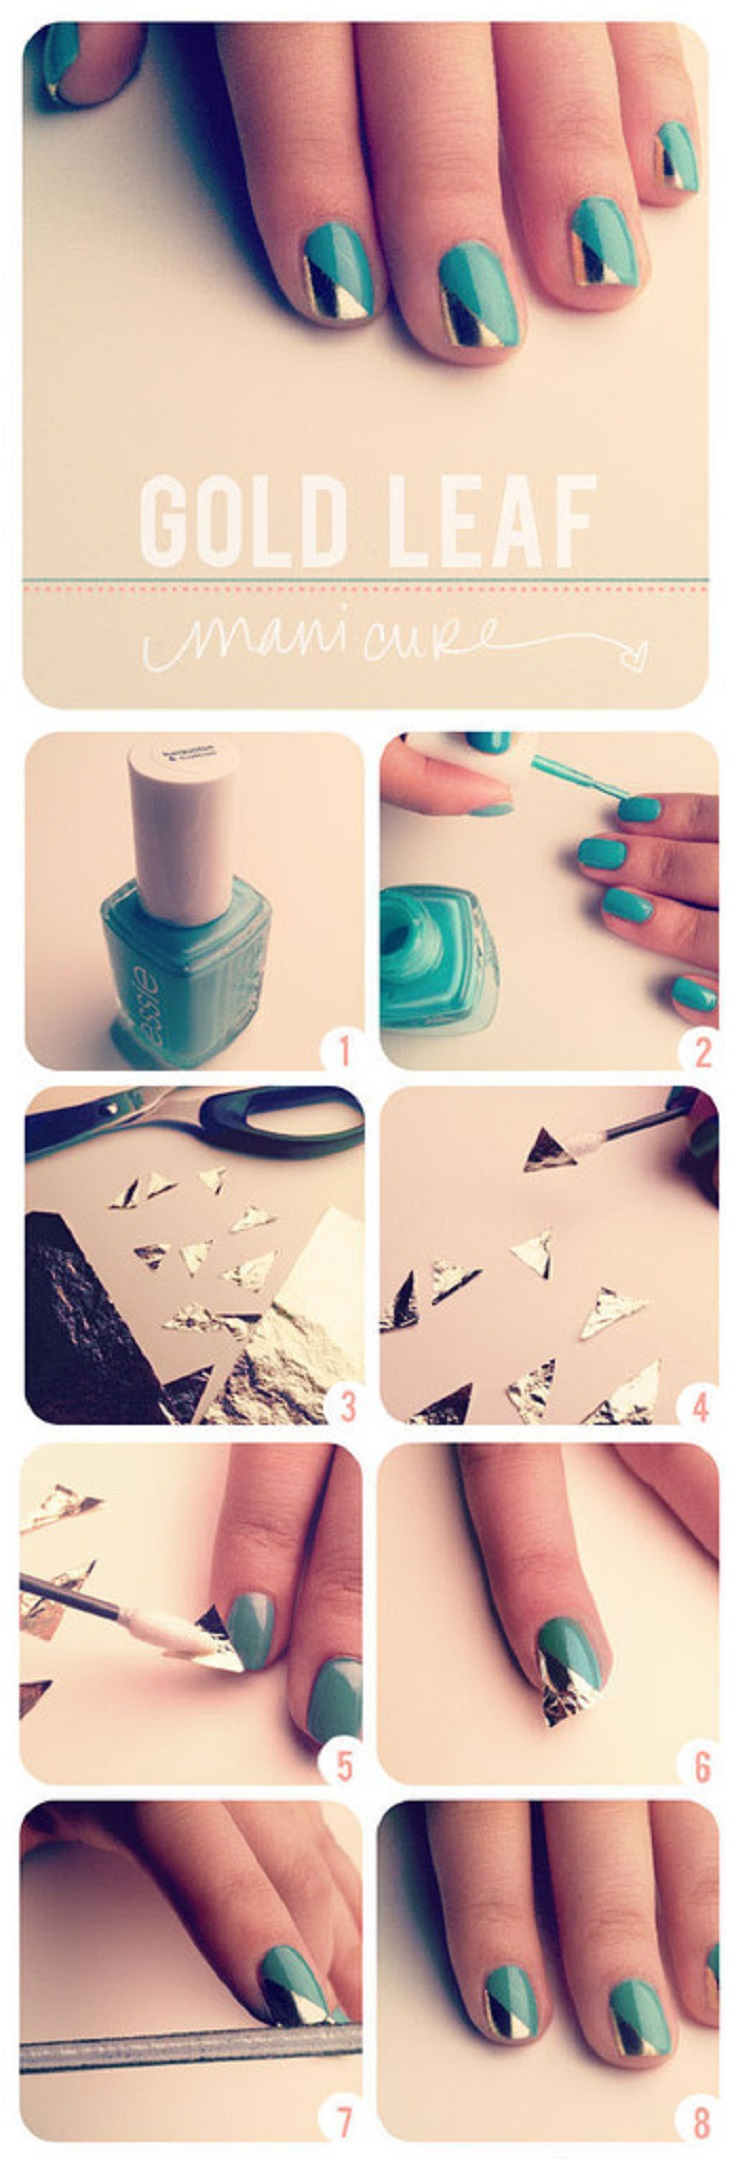 Top 10 Most Wanted Nail Art Tutorials